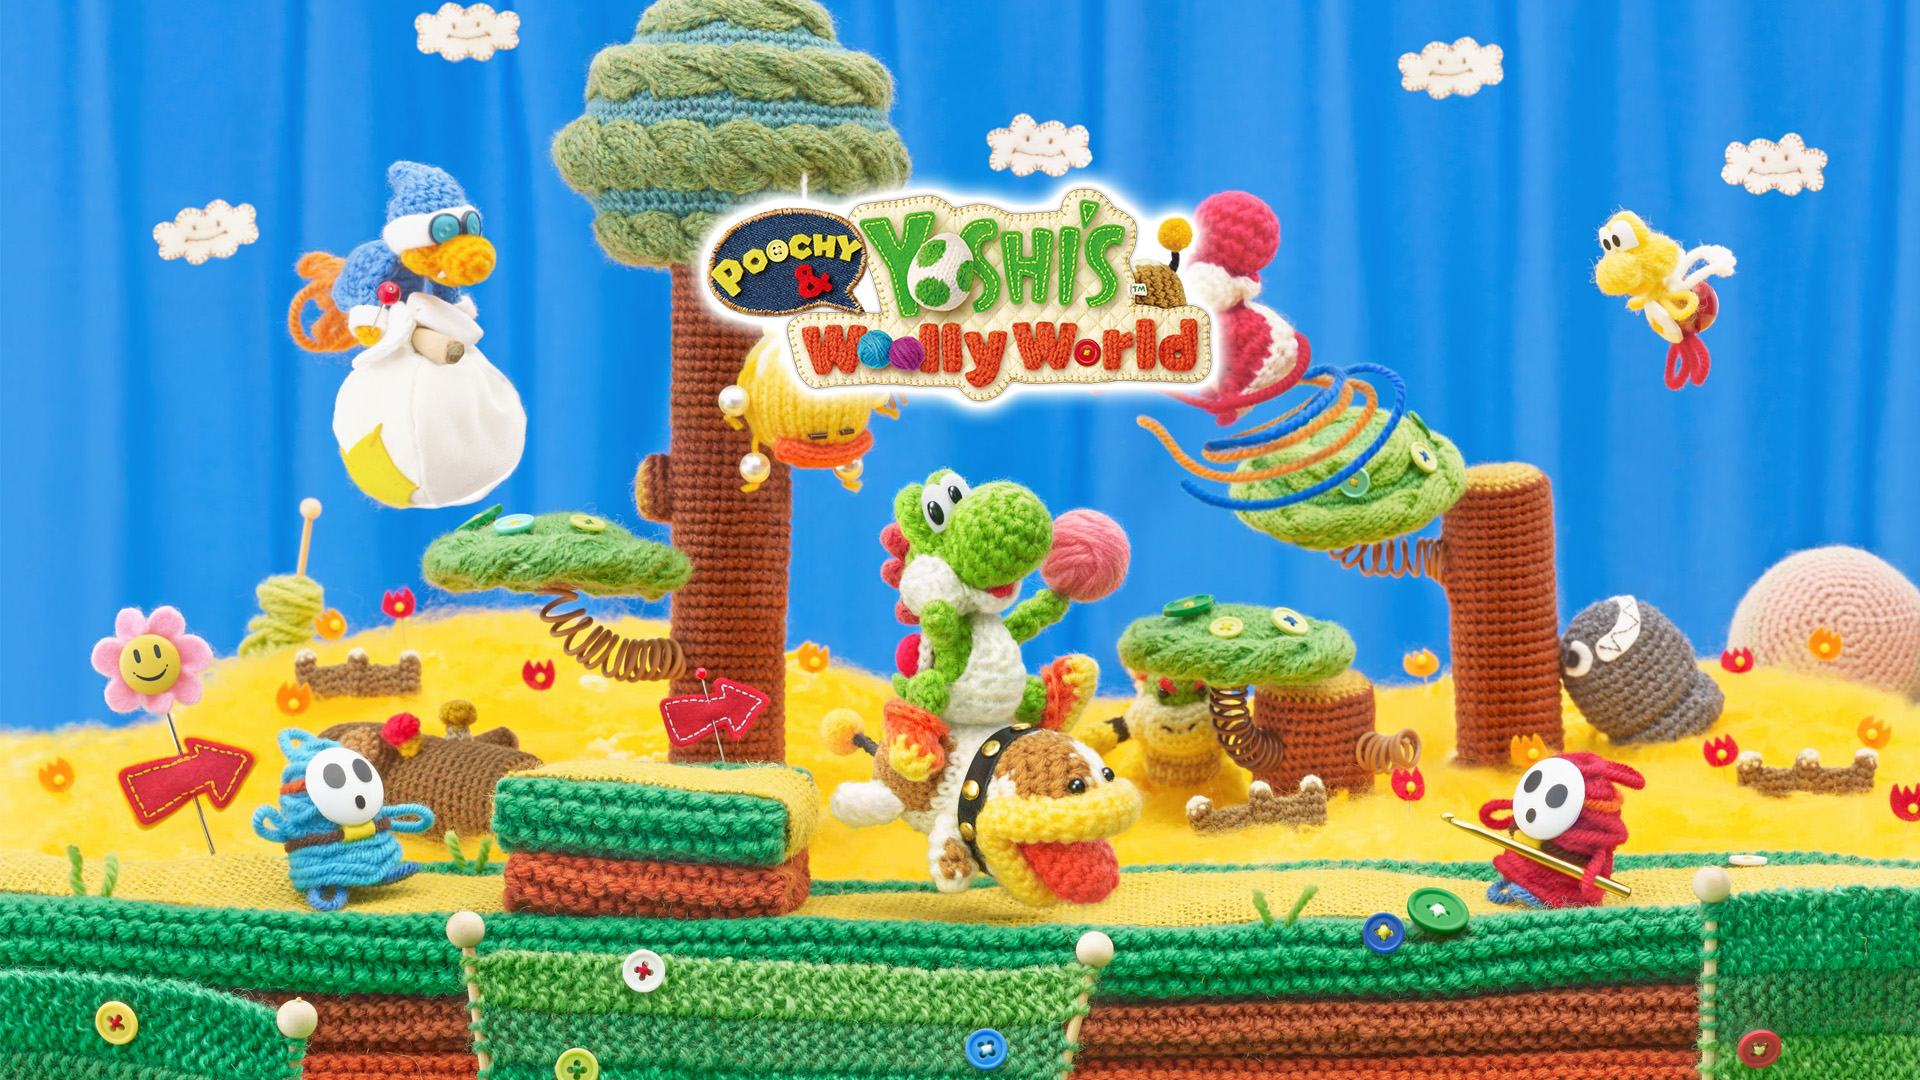 Banner-PoochyYoshiWoollyWorld